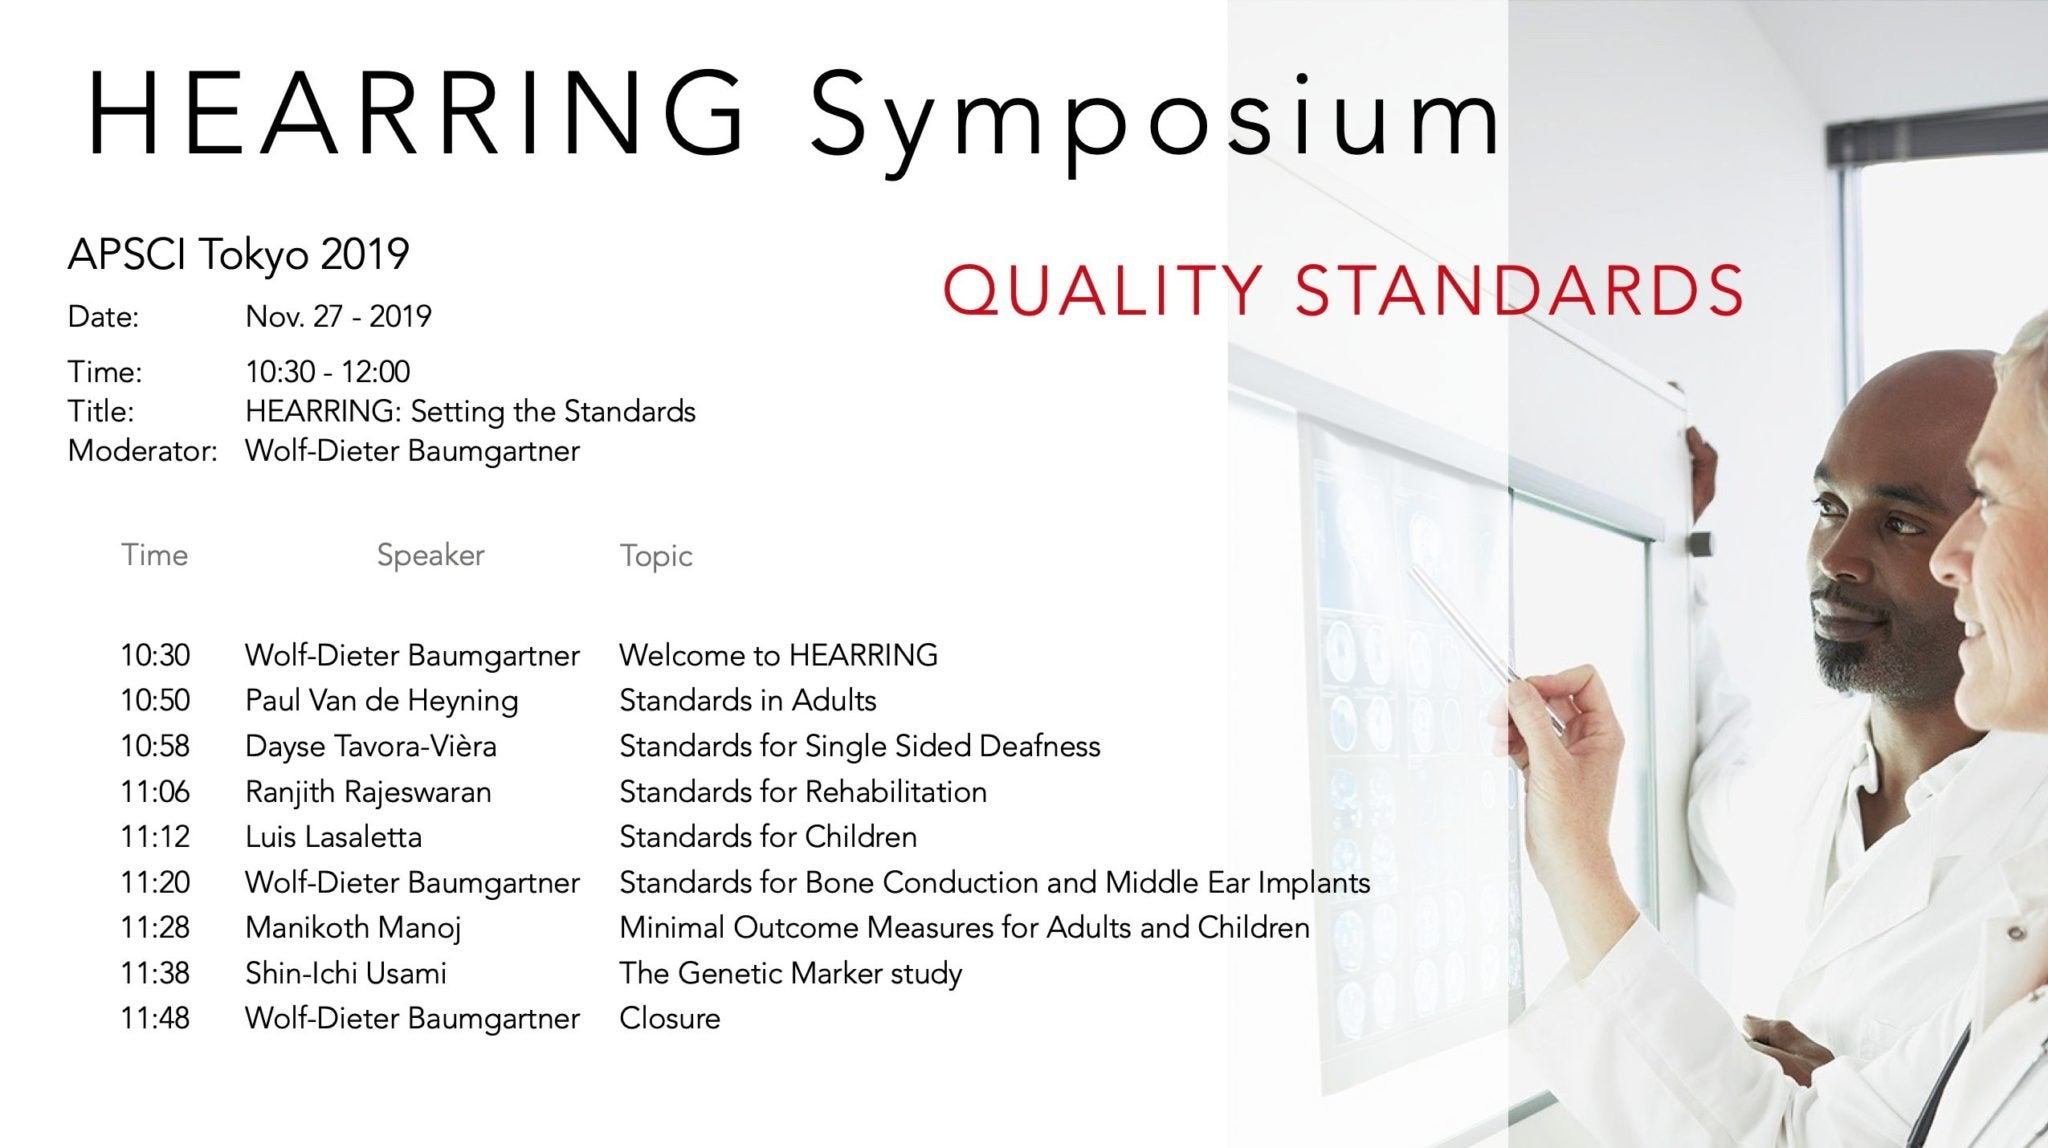 HEARRING Symposium Quality Standards